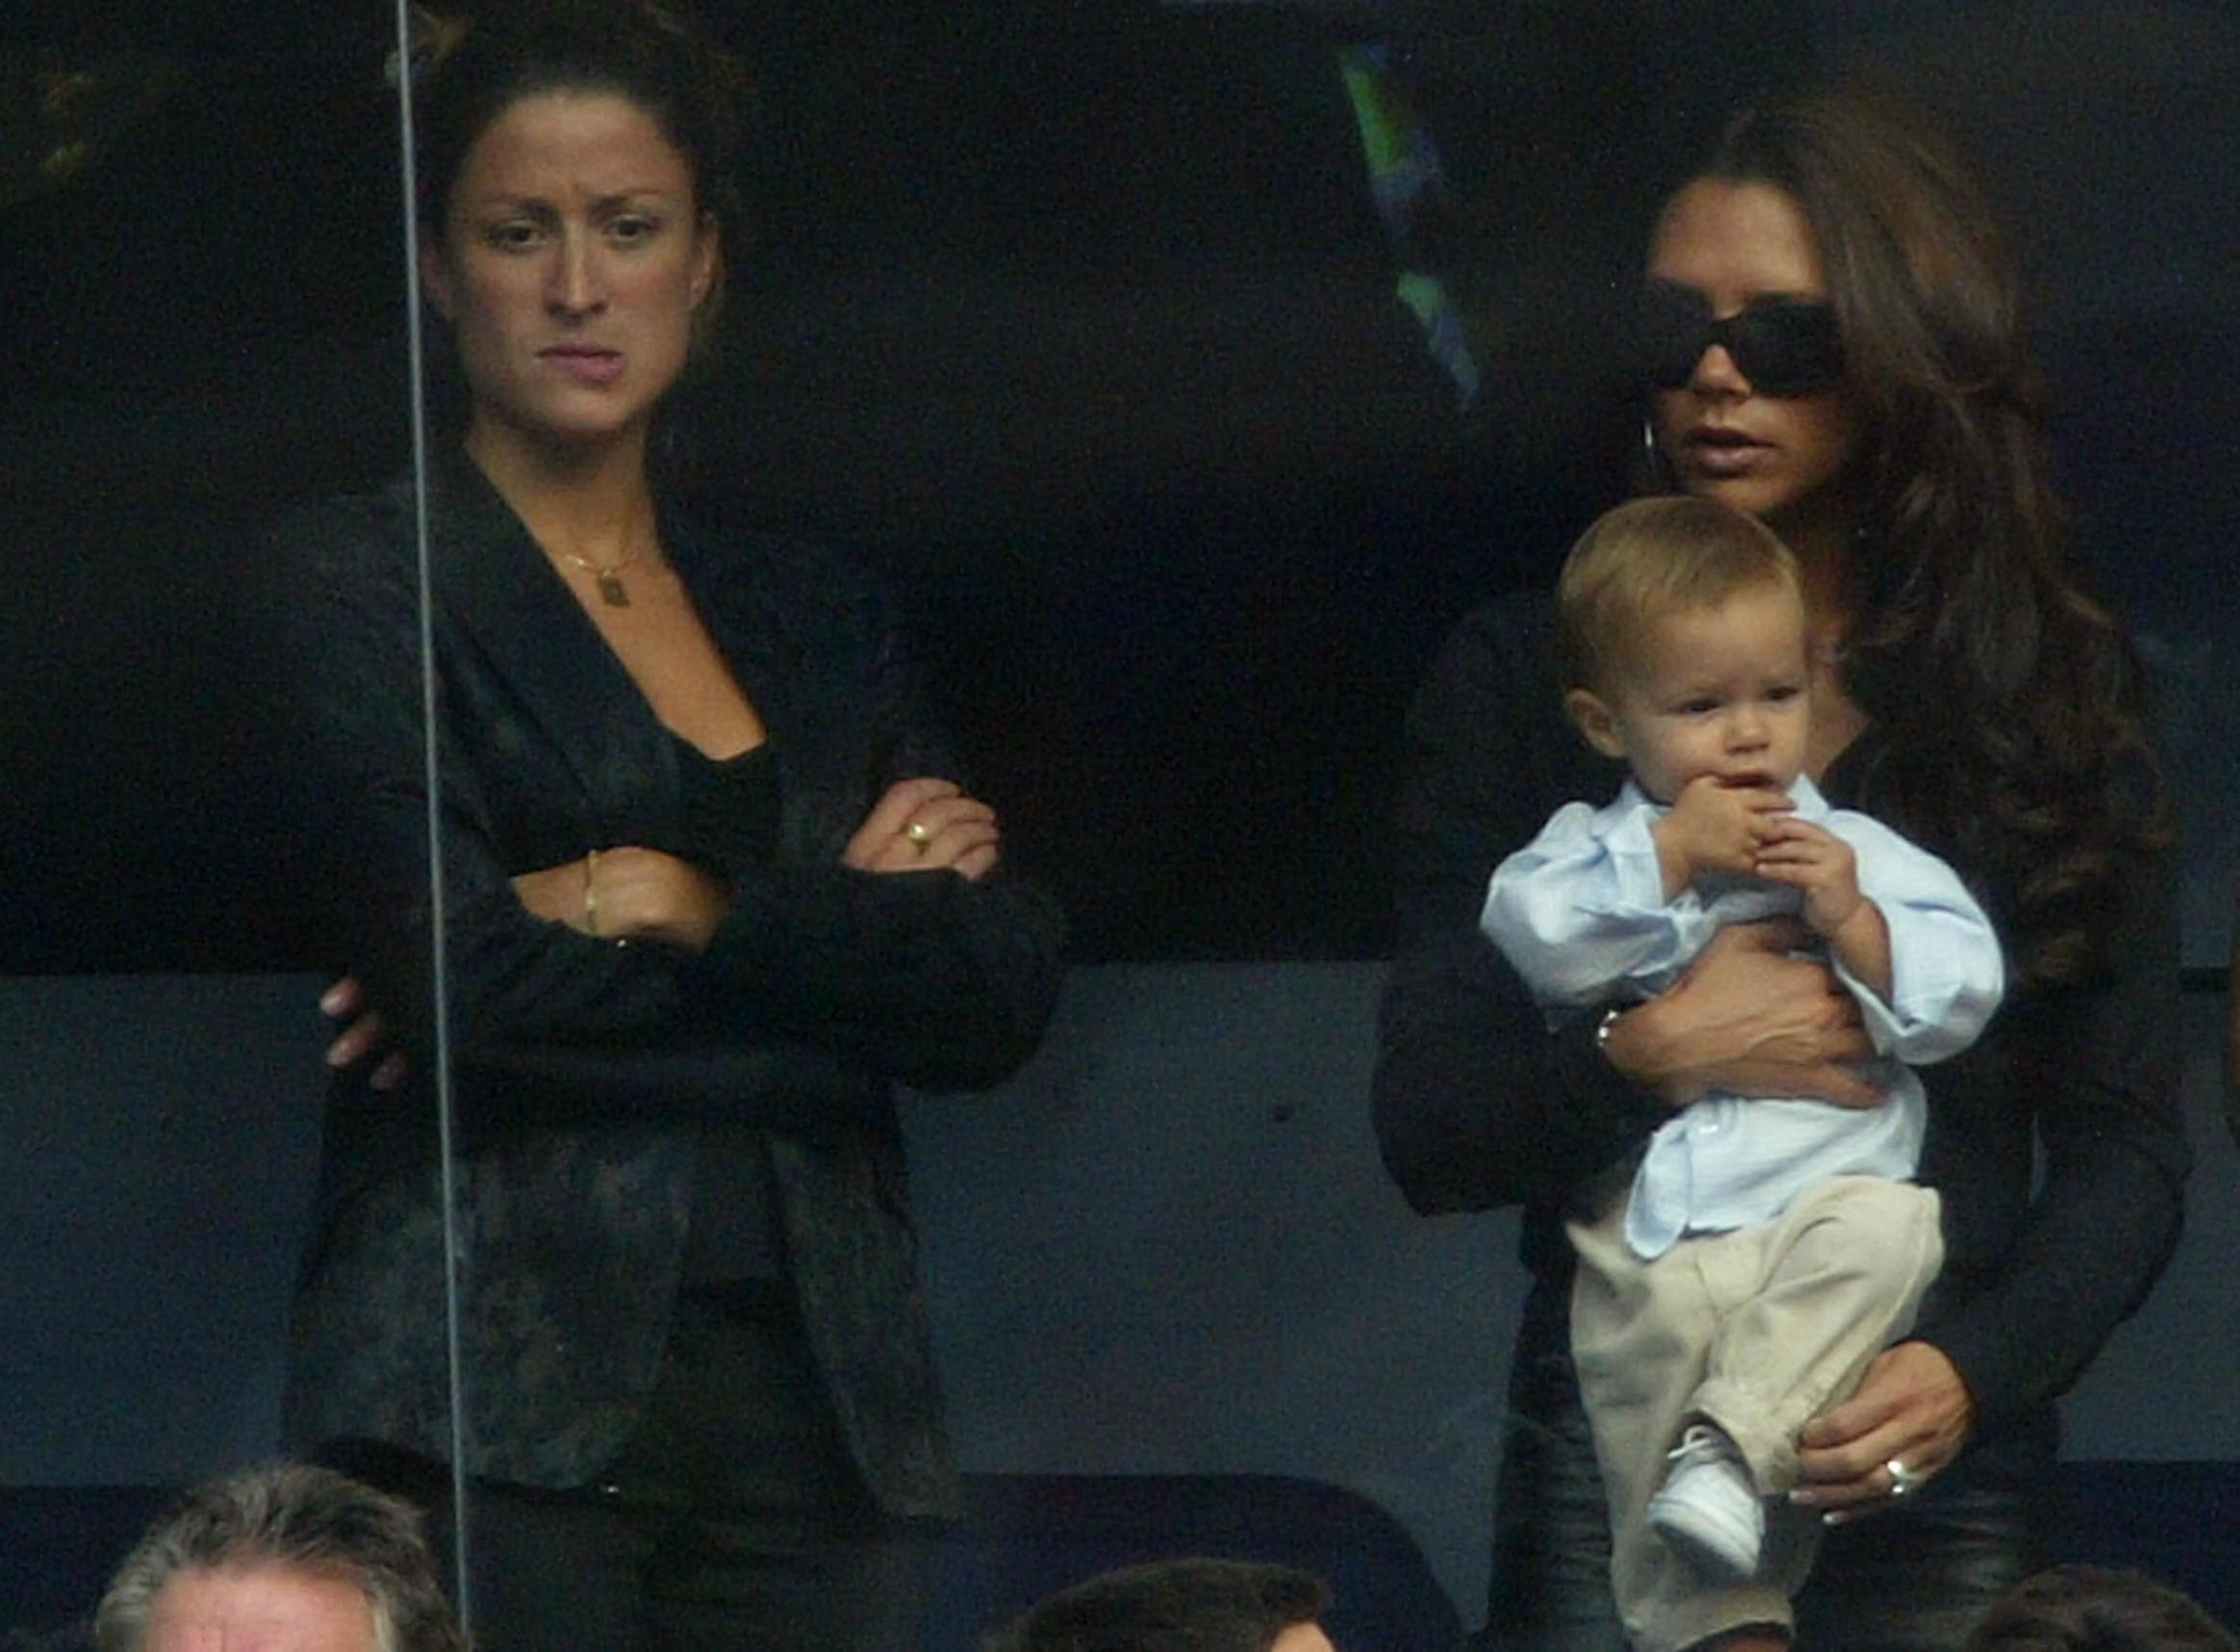 MADRID, SPAIN - SEPTEMBER 13: (FILE PHOTO)  Victoria Beckham holds son Romeo beside David Beckham's PA Rebecca Loos during the Spanish Primera Liga match between Real Madrid and Valladolid at the Santiago Bernabeu Stadium on September 13, 2003 in Madrid, Spain. David Beckham and former PA Rebecca Loos are under scrutiny for an alleged affair, reported by the News Of The World this weekend. (Photo by Shaun Botterill/Getty Images)